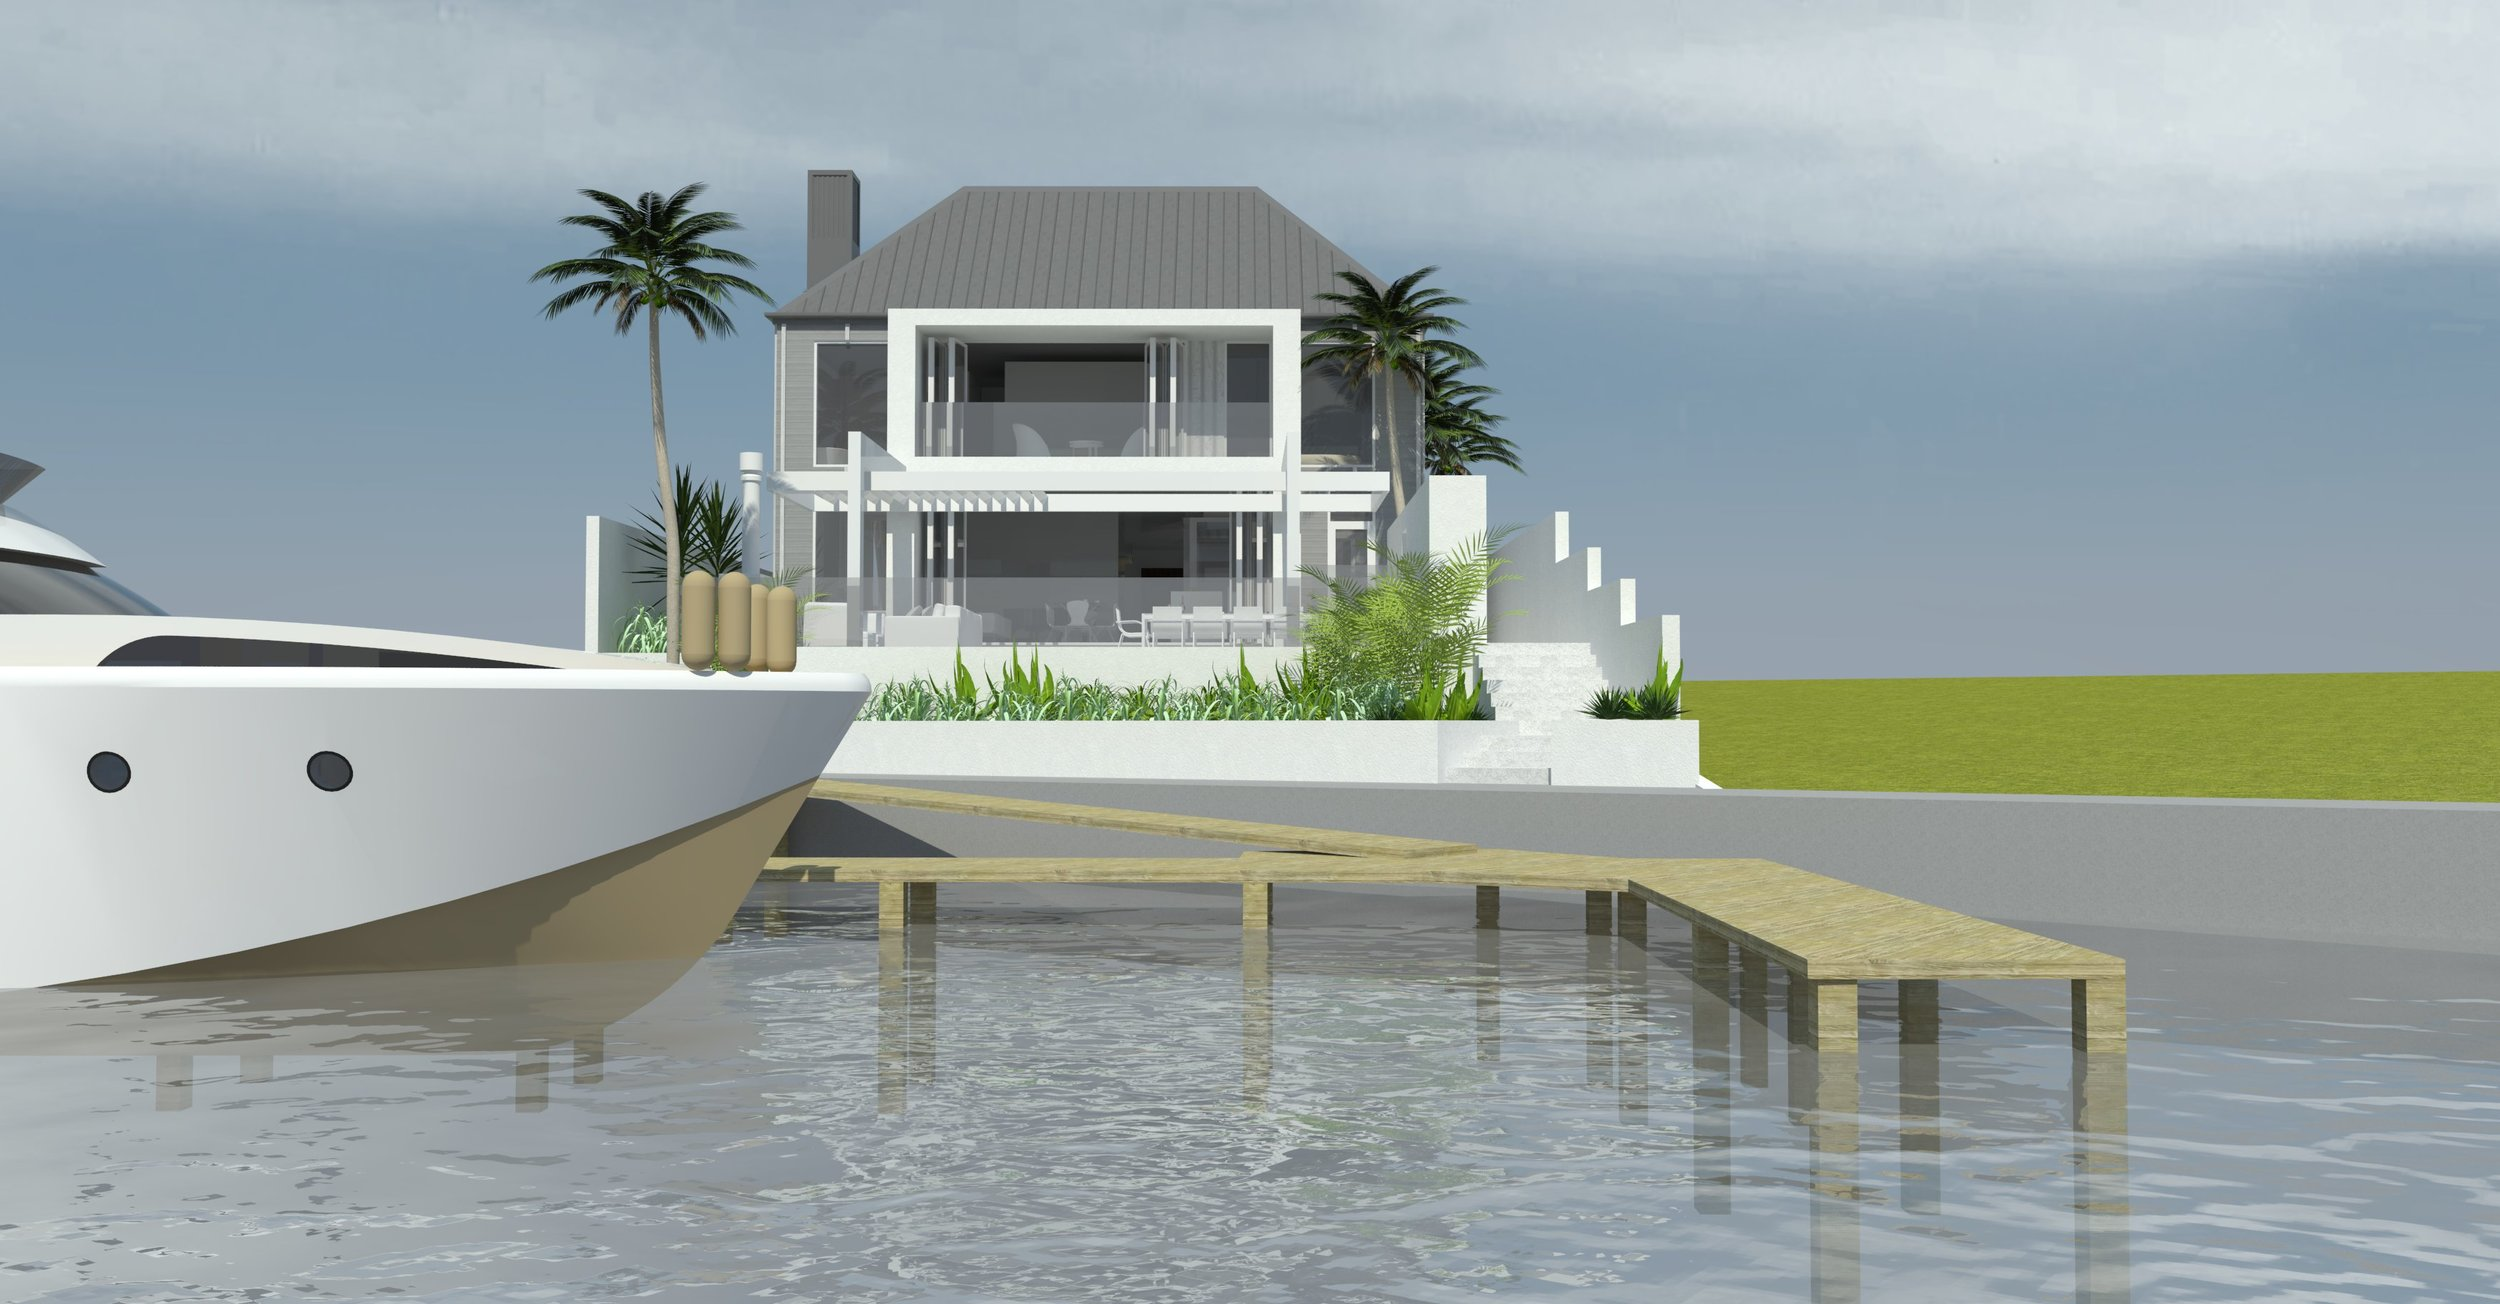 161201 Gulf Harbour - Rear View from Water.jpg